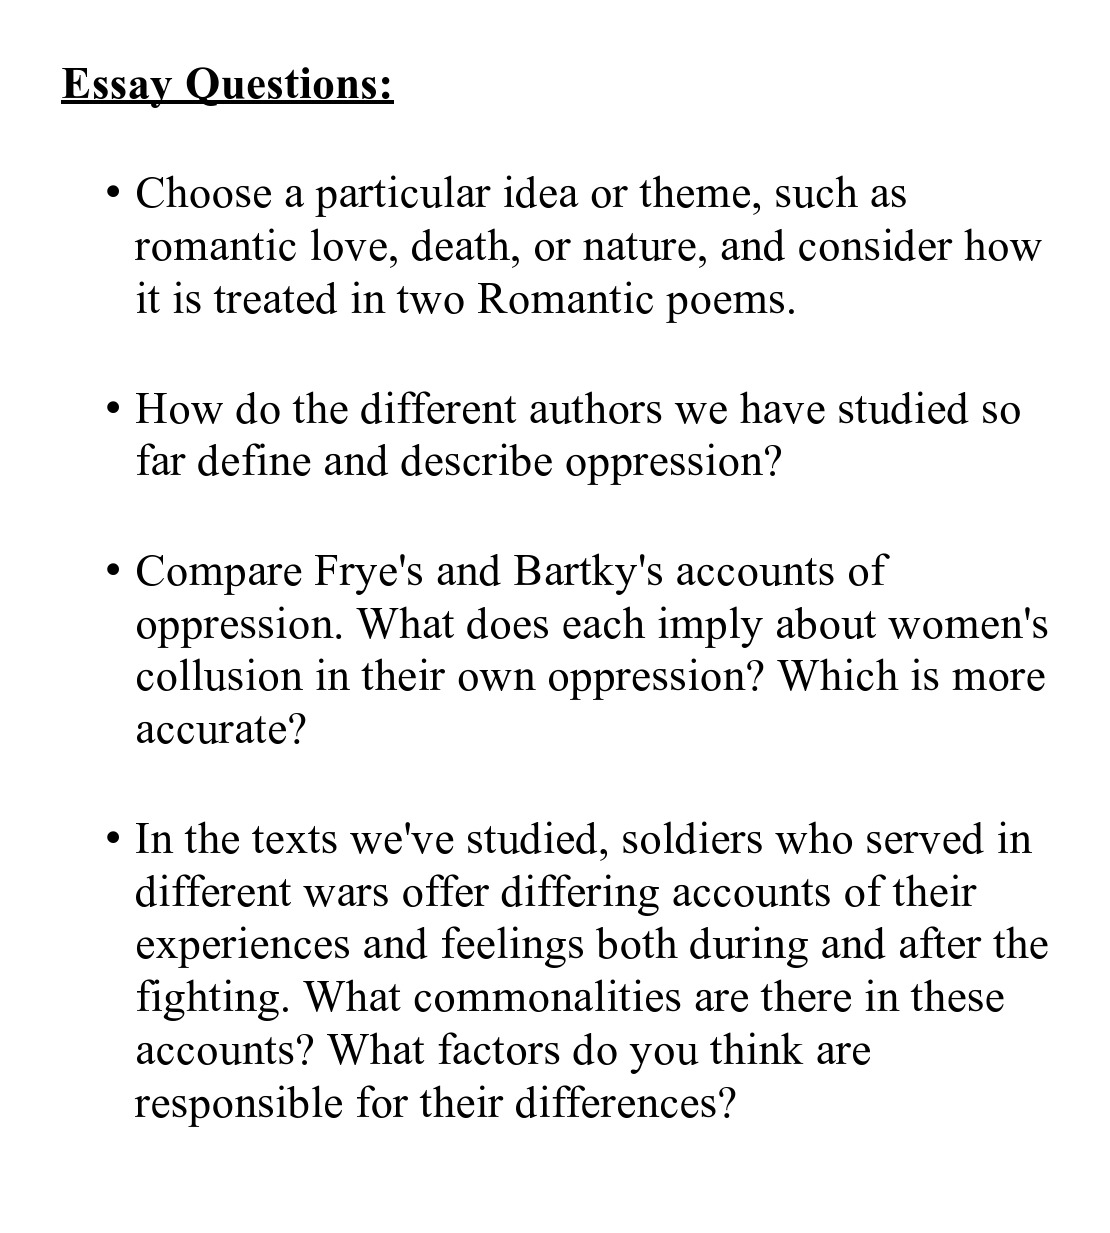 001 Essay Questions Example Awful For Fahrenheit 451 And Answers On The Great Gatsby Lady Macbeth Full